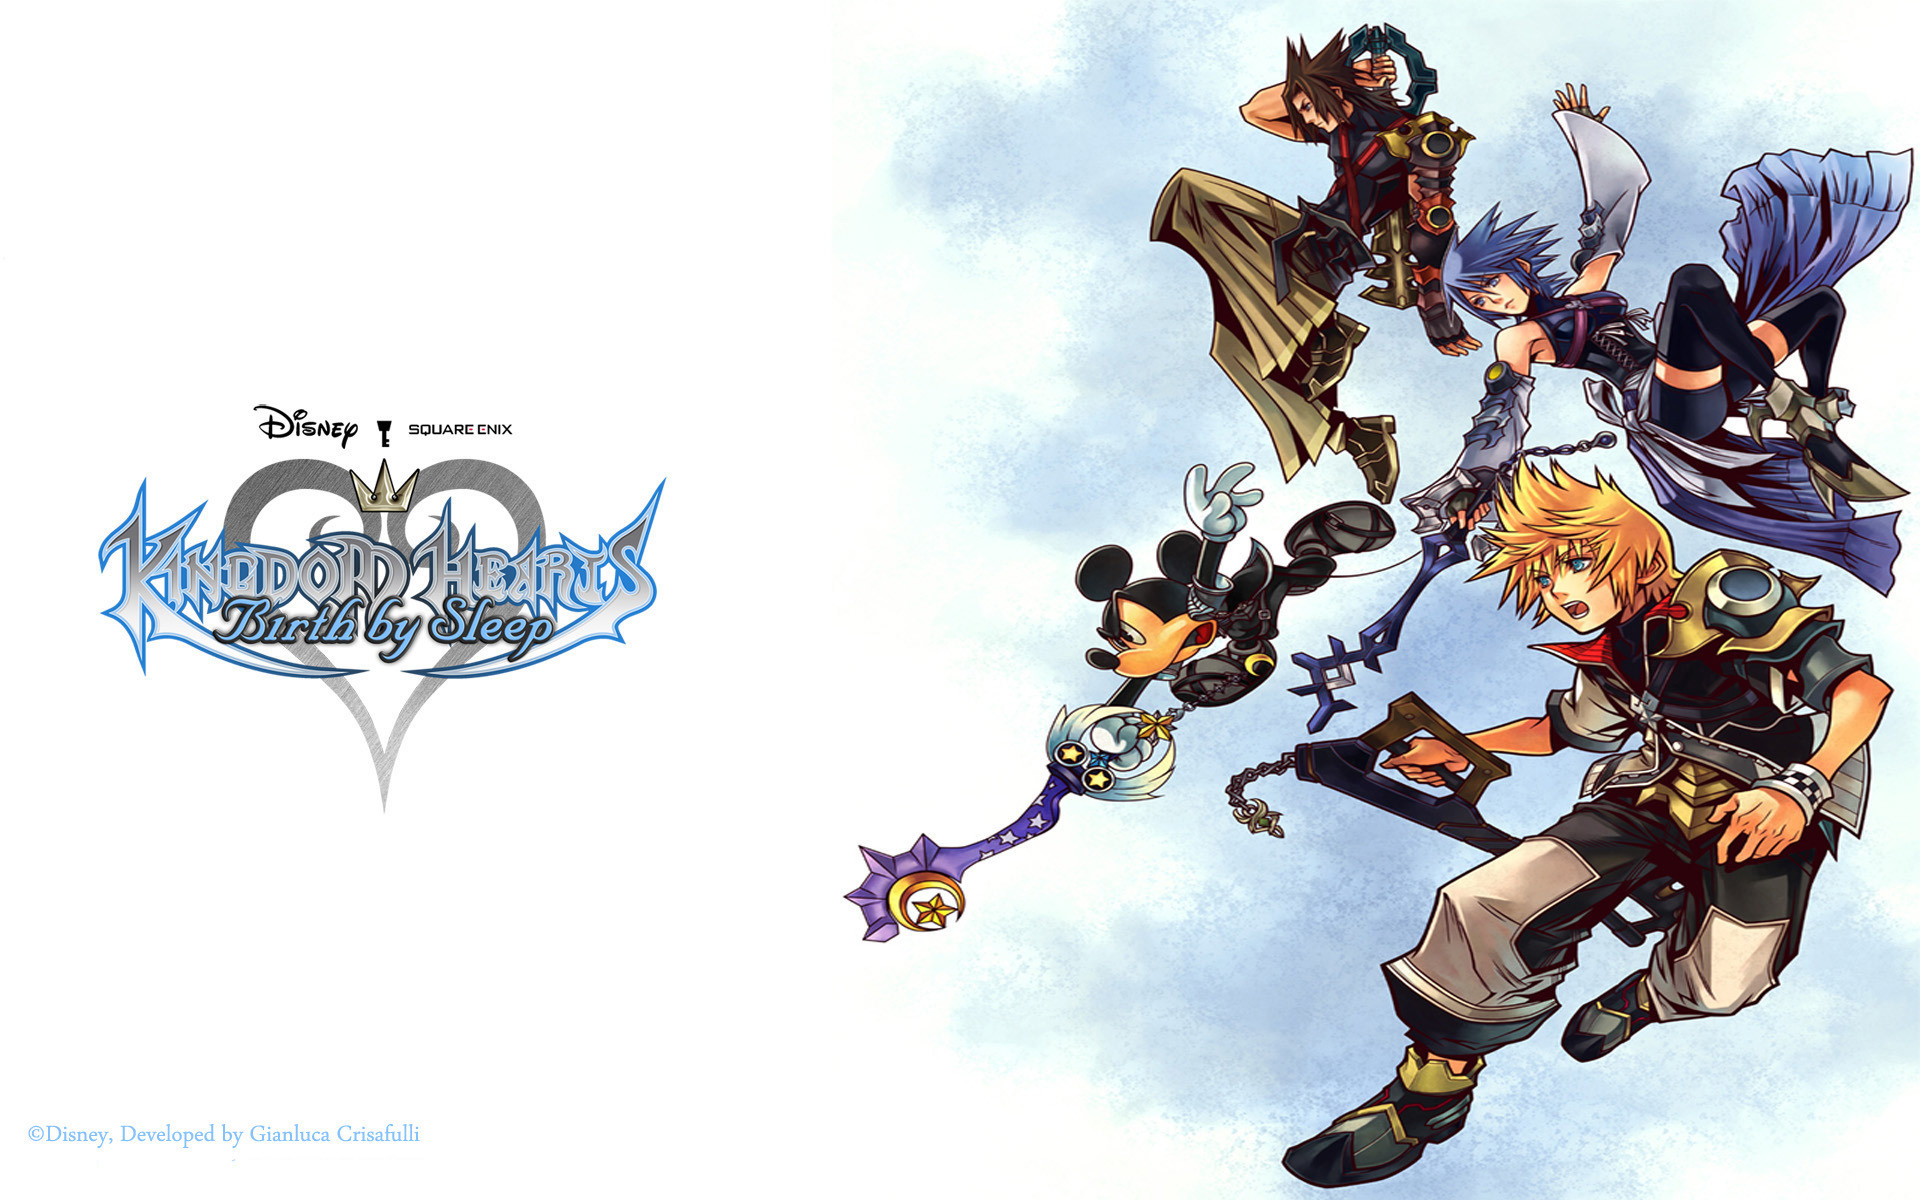 1920x1200 Kingdom Hearts HD Wallpaper 1920x1080 Kingdom Hearts HD Wallpaper